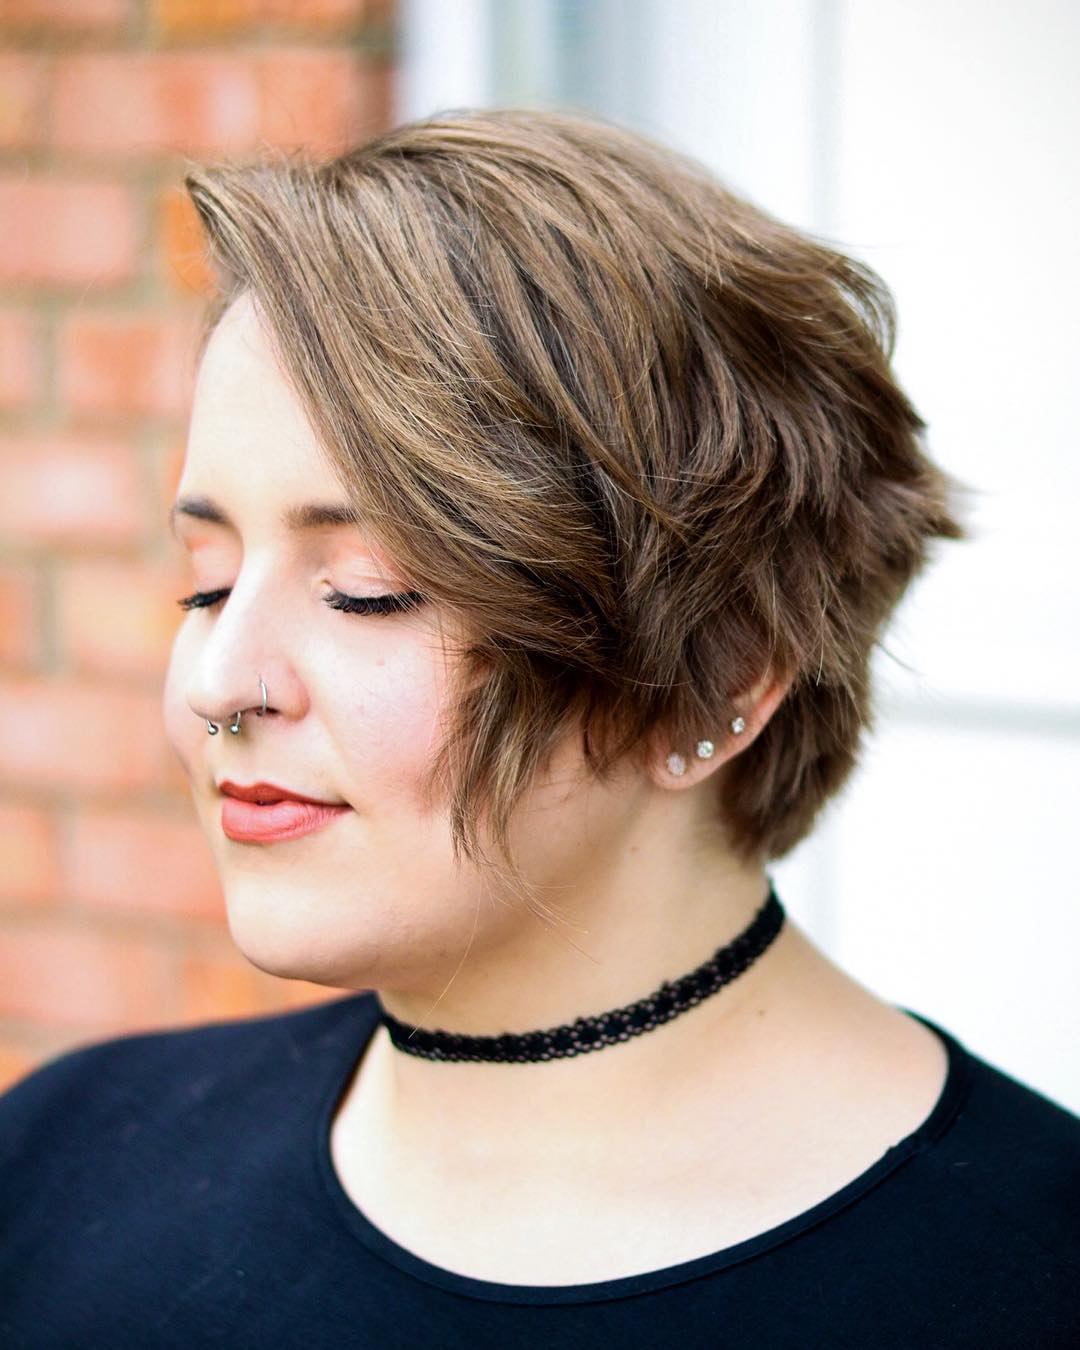 15 Flattering Short Hairstyles for Round Face Shapes in 15